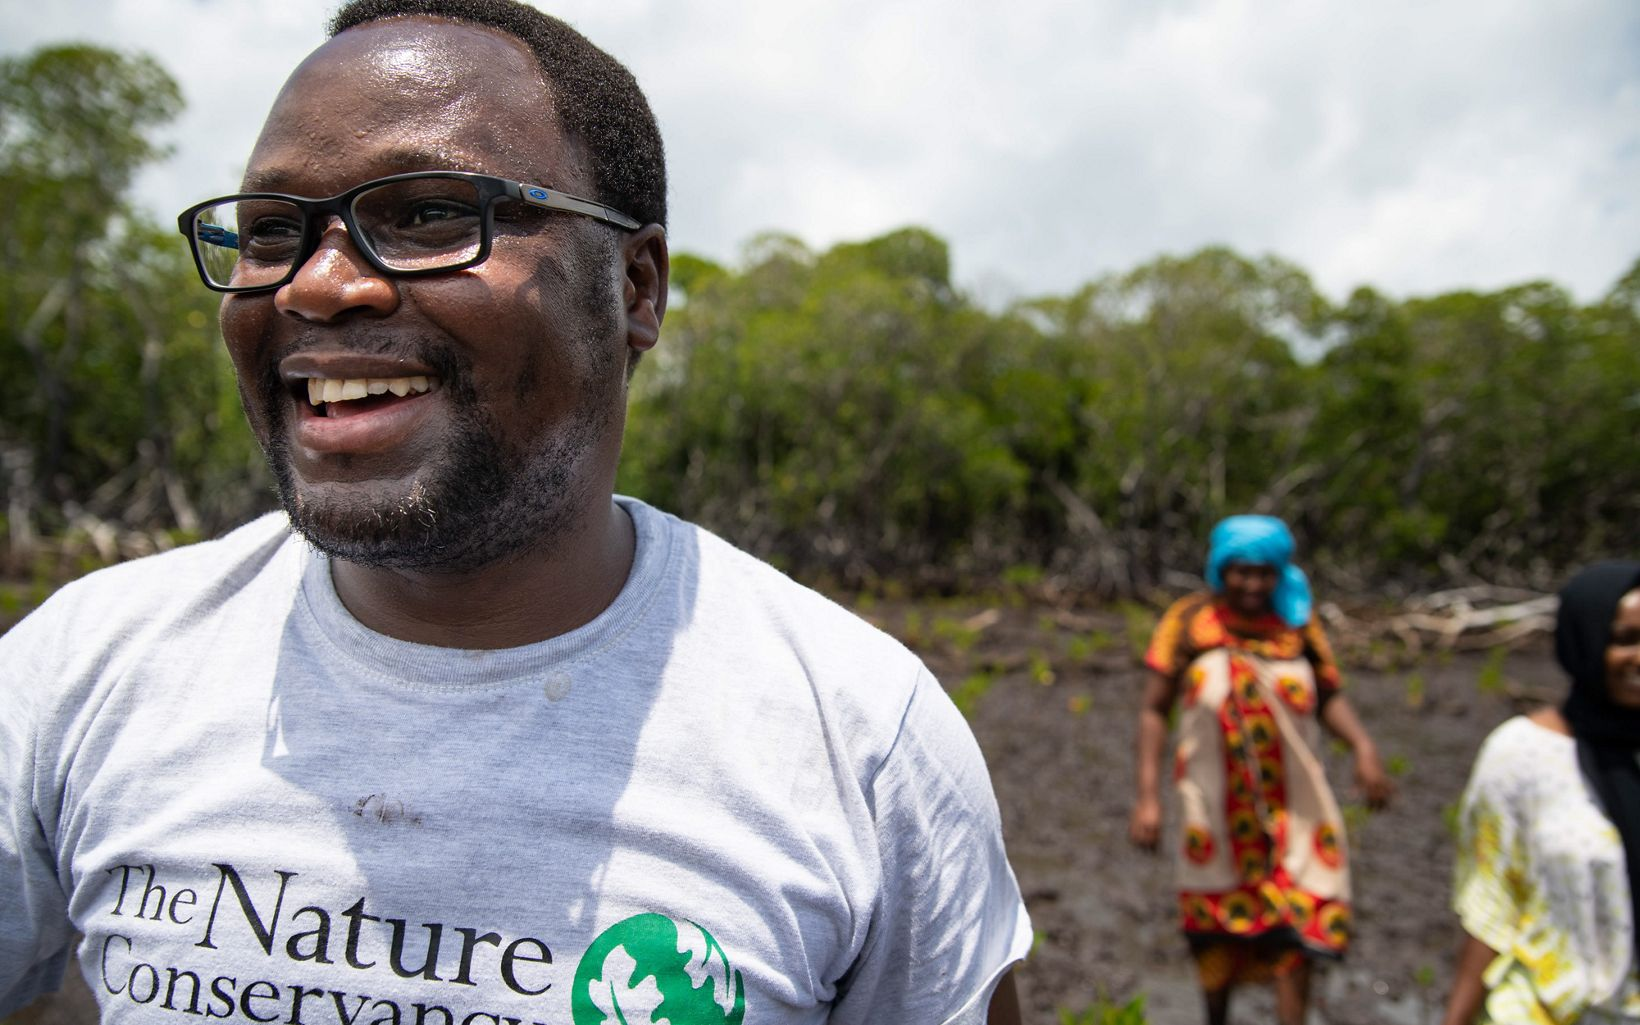 """TNC Africa Fisheries Strategy Manager George Maina leads a mangrove restoration project in Lamu, Kenya. """"Mangroves are the tropical rainforests of the ocean,"""" George says."""